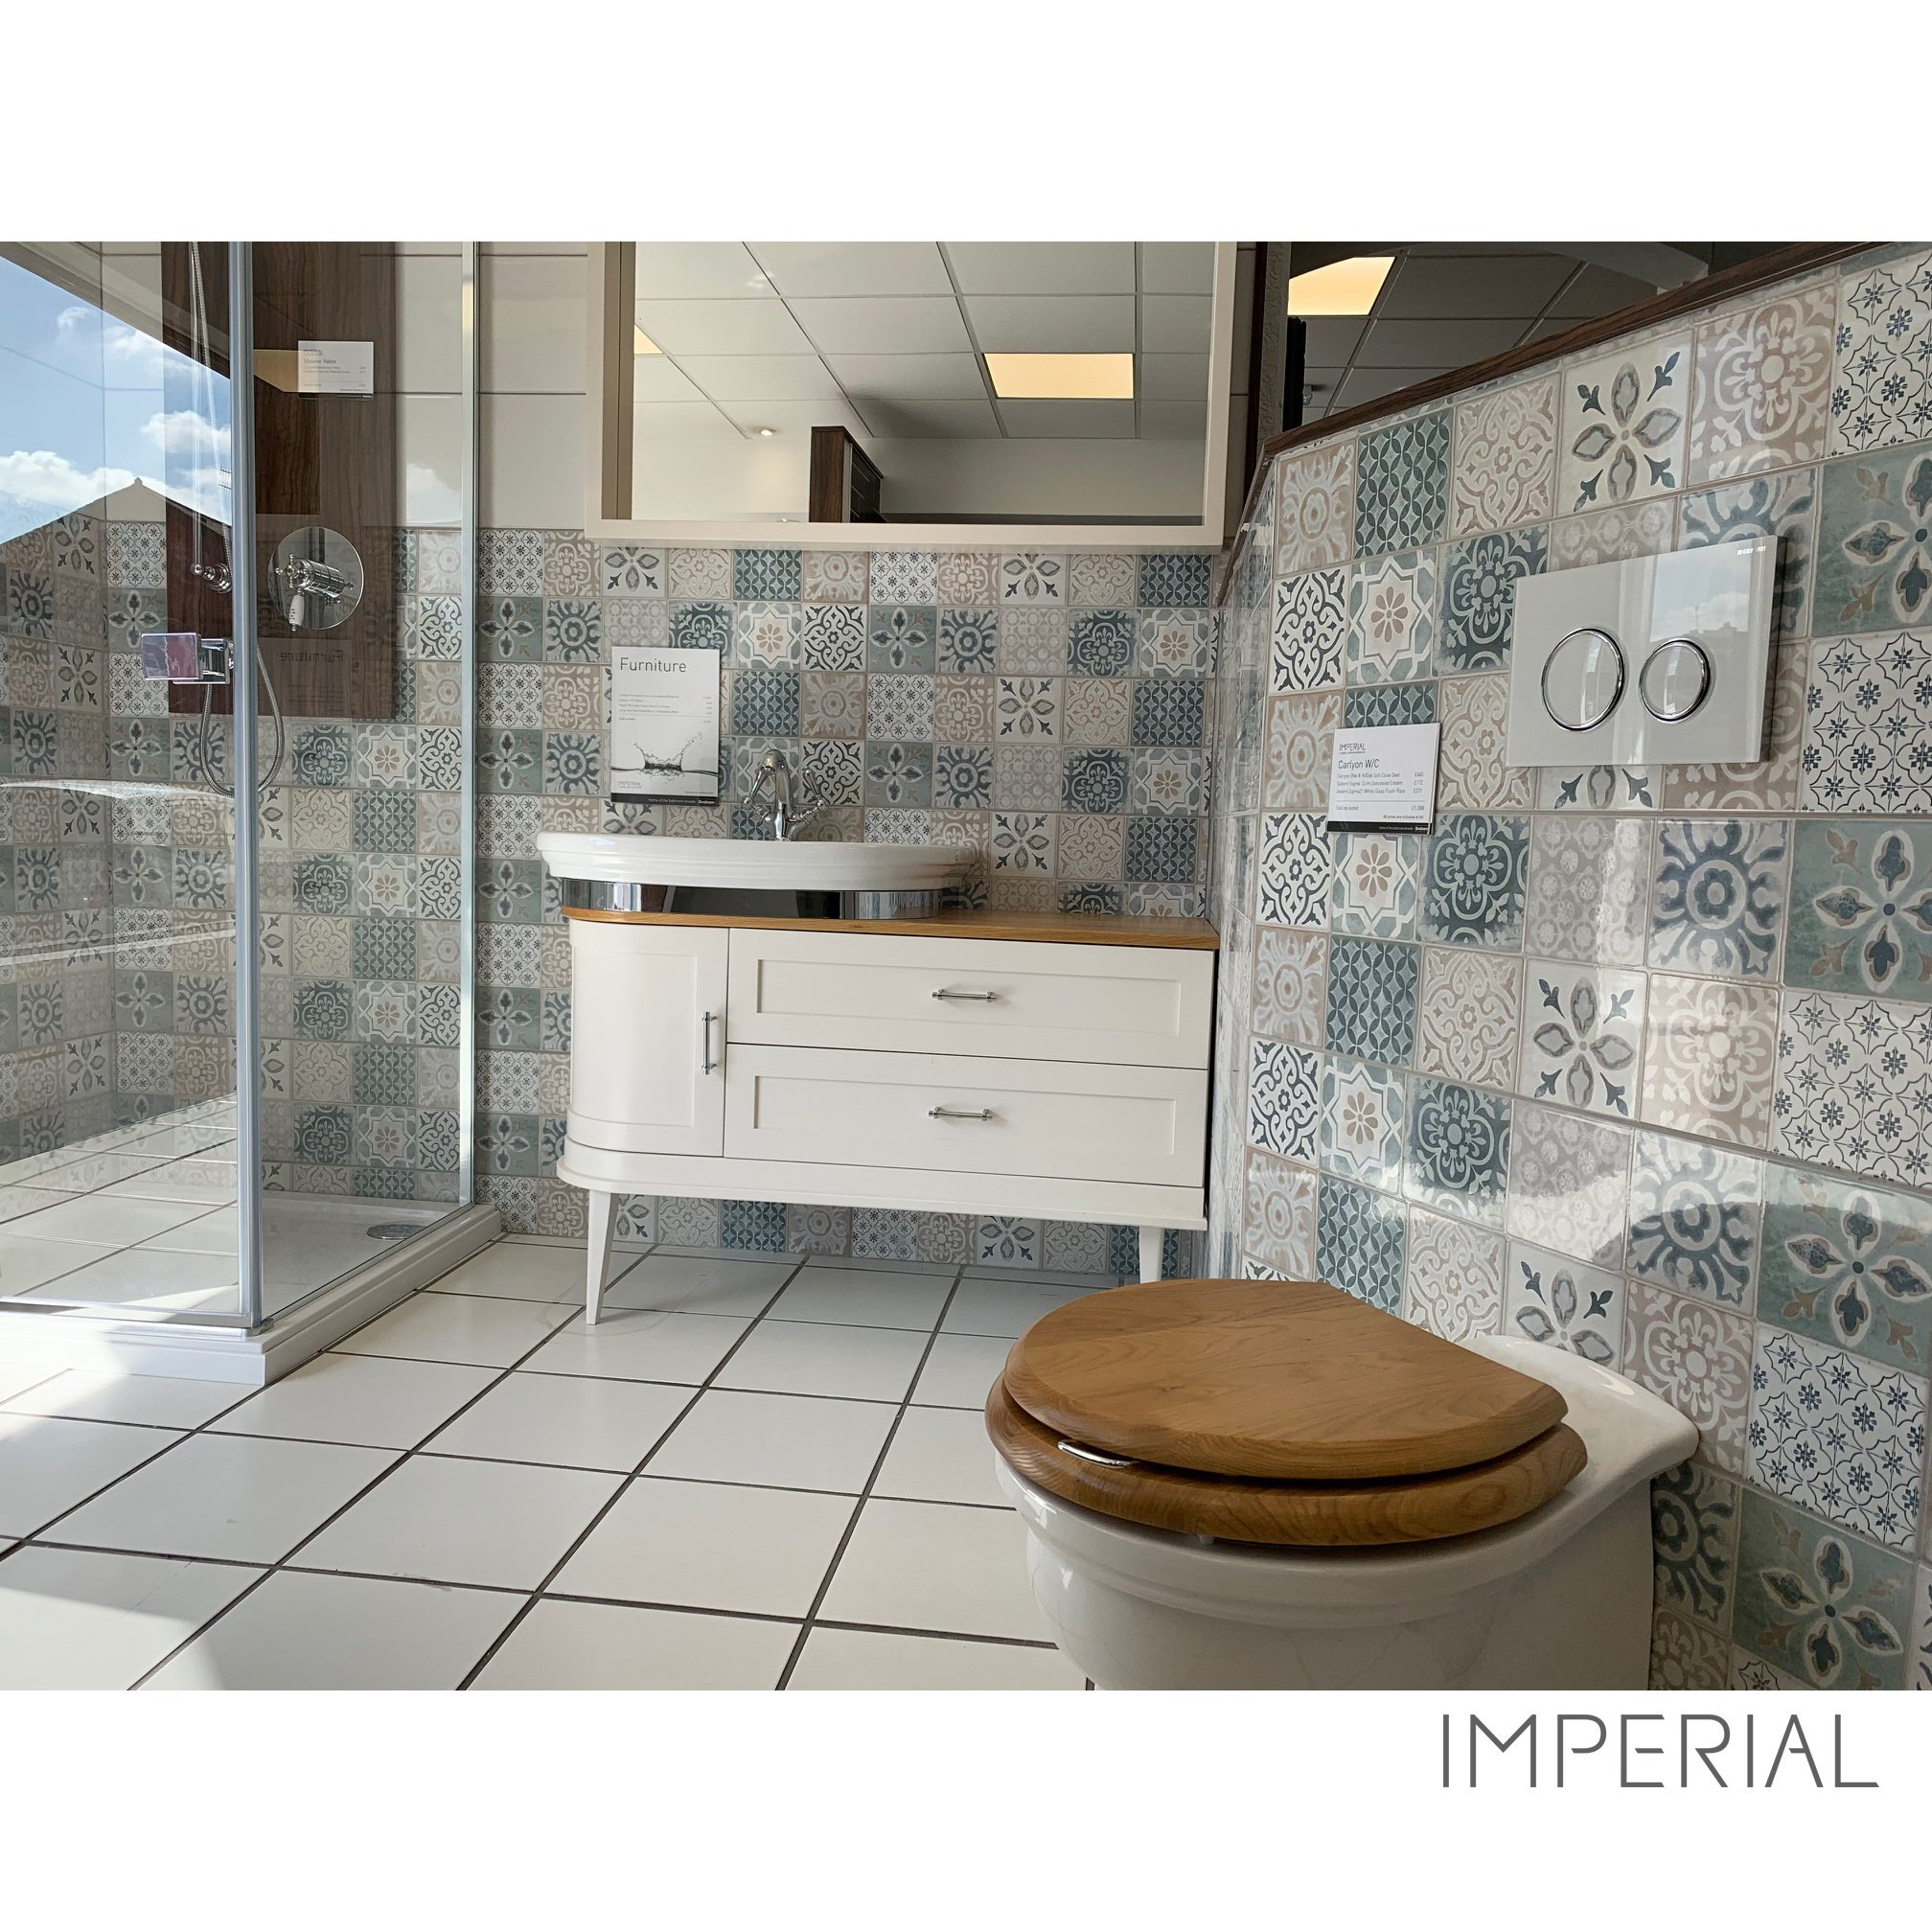 Imperial Bathrooms On Twitter A